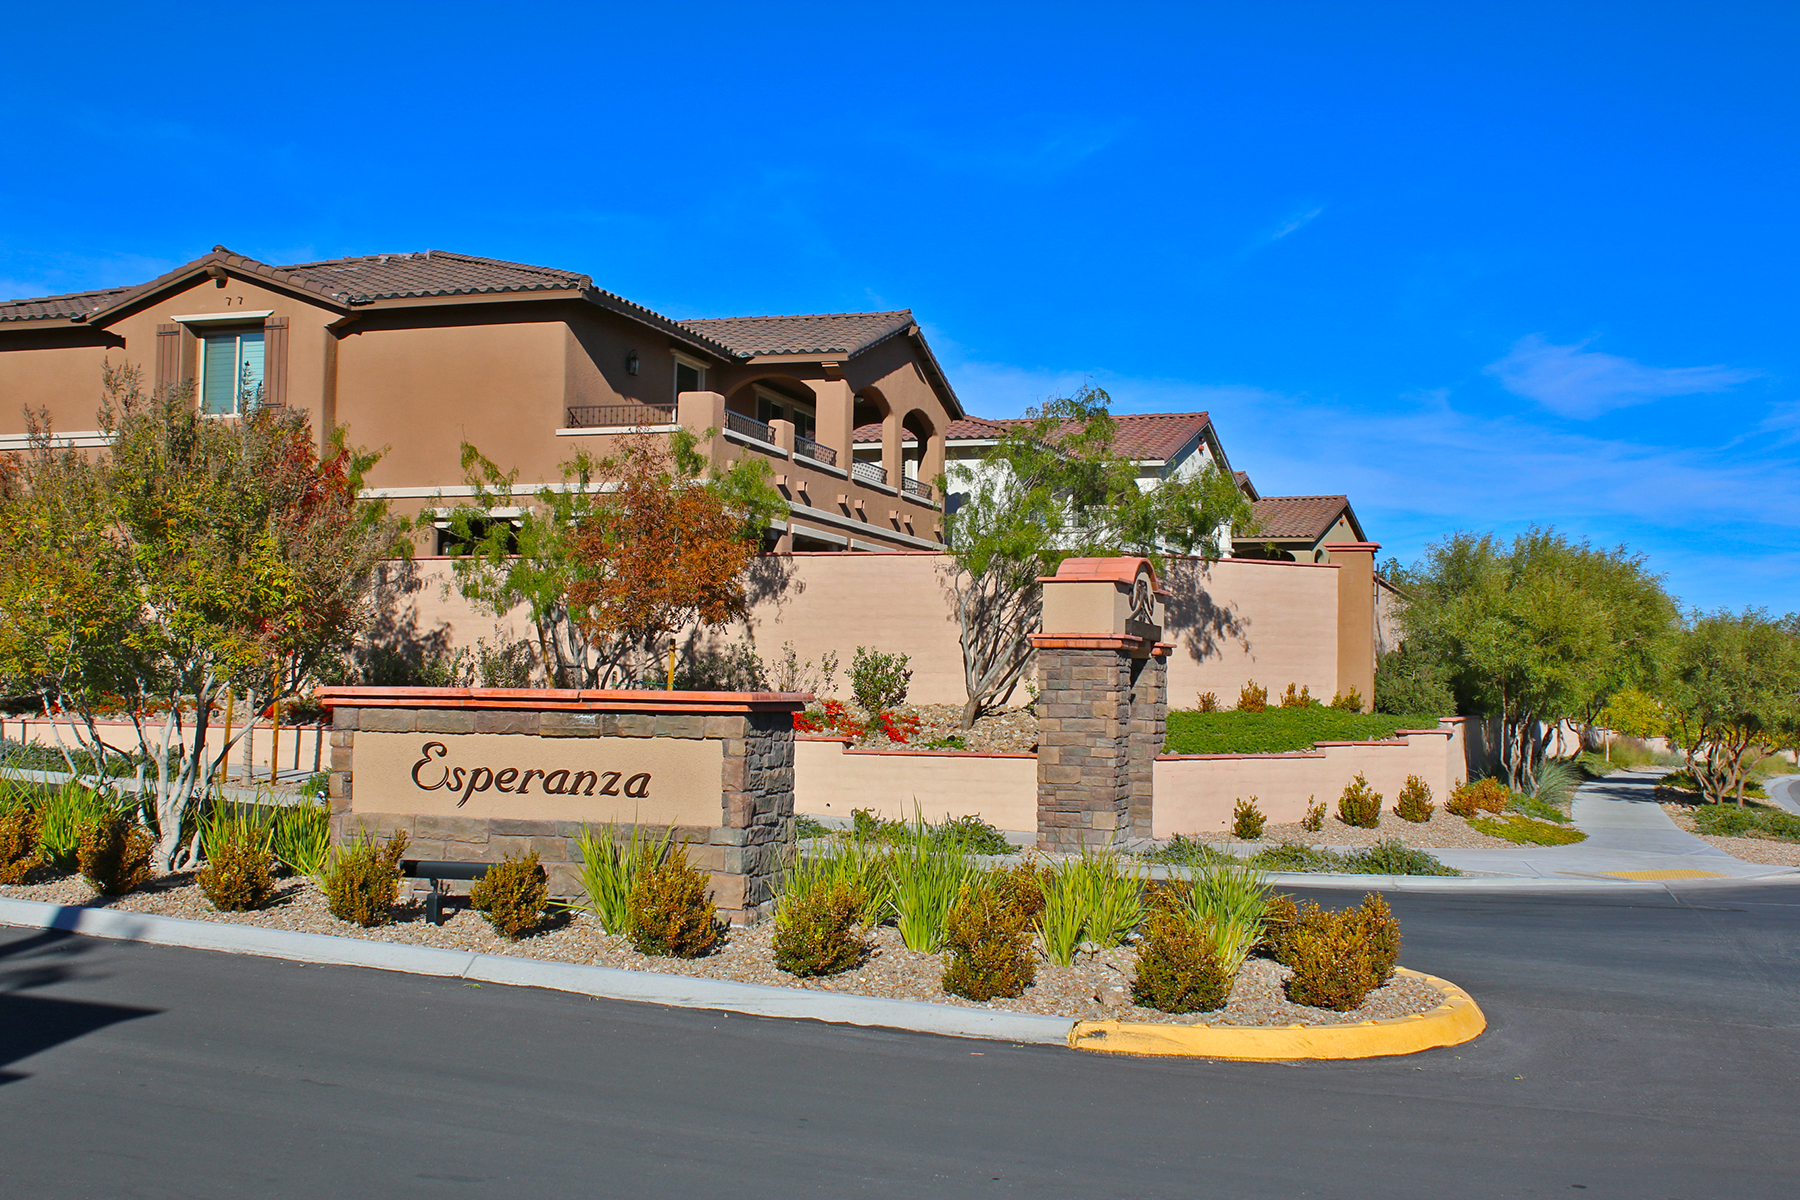 esperanza homes for sale summerlin the paseos las vegas real estate